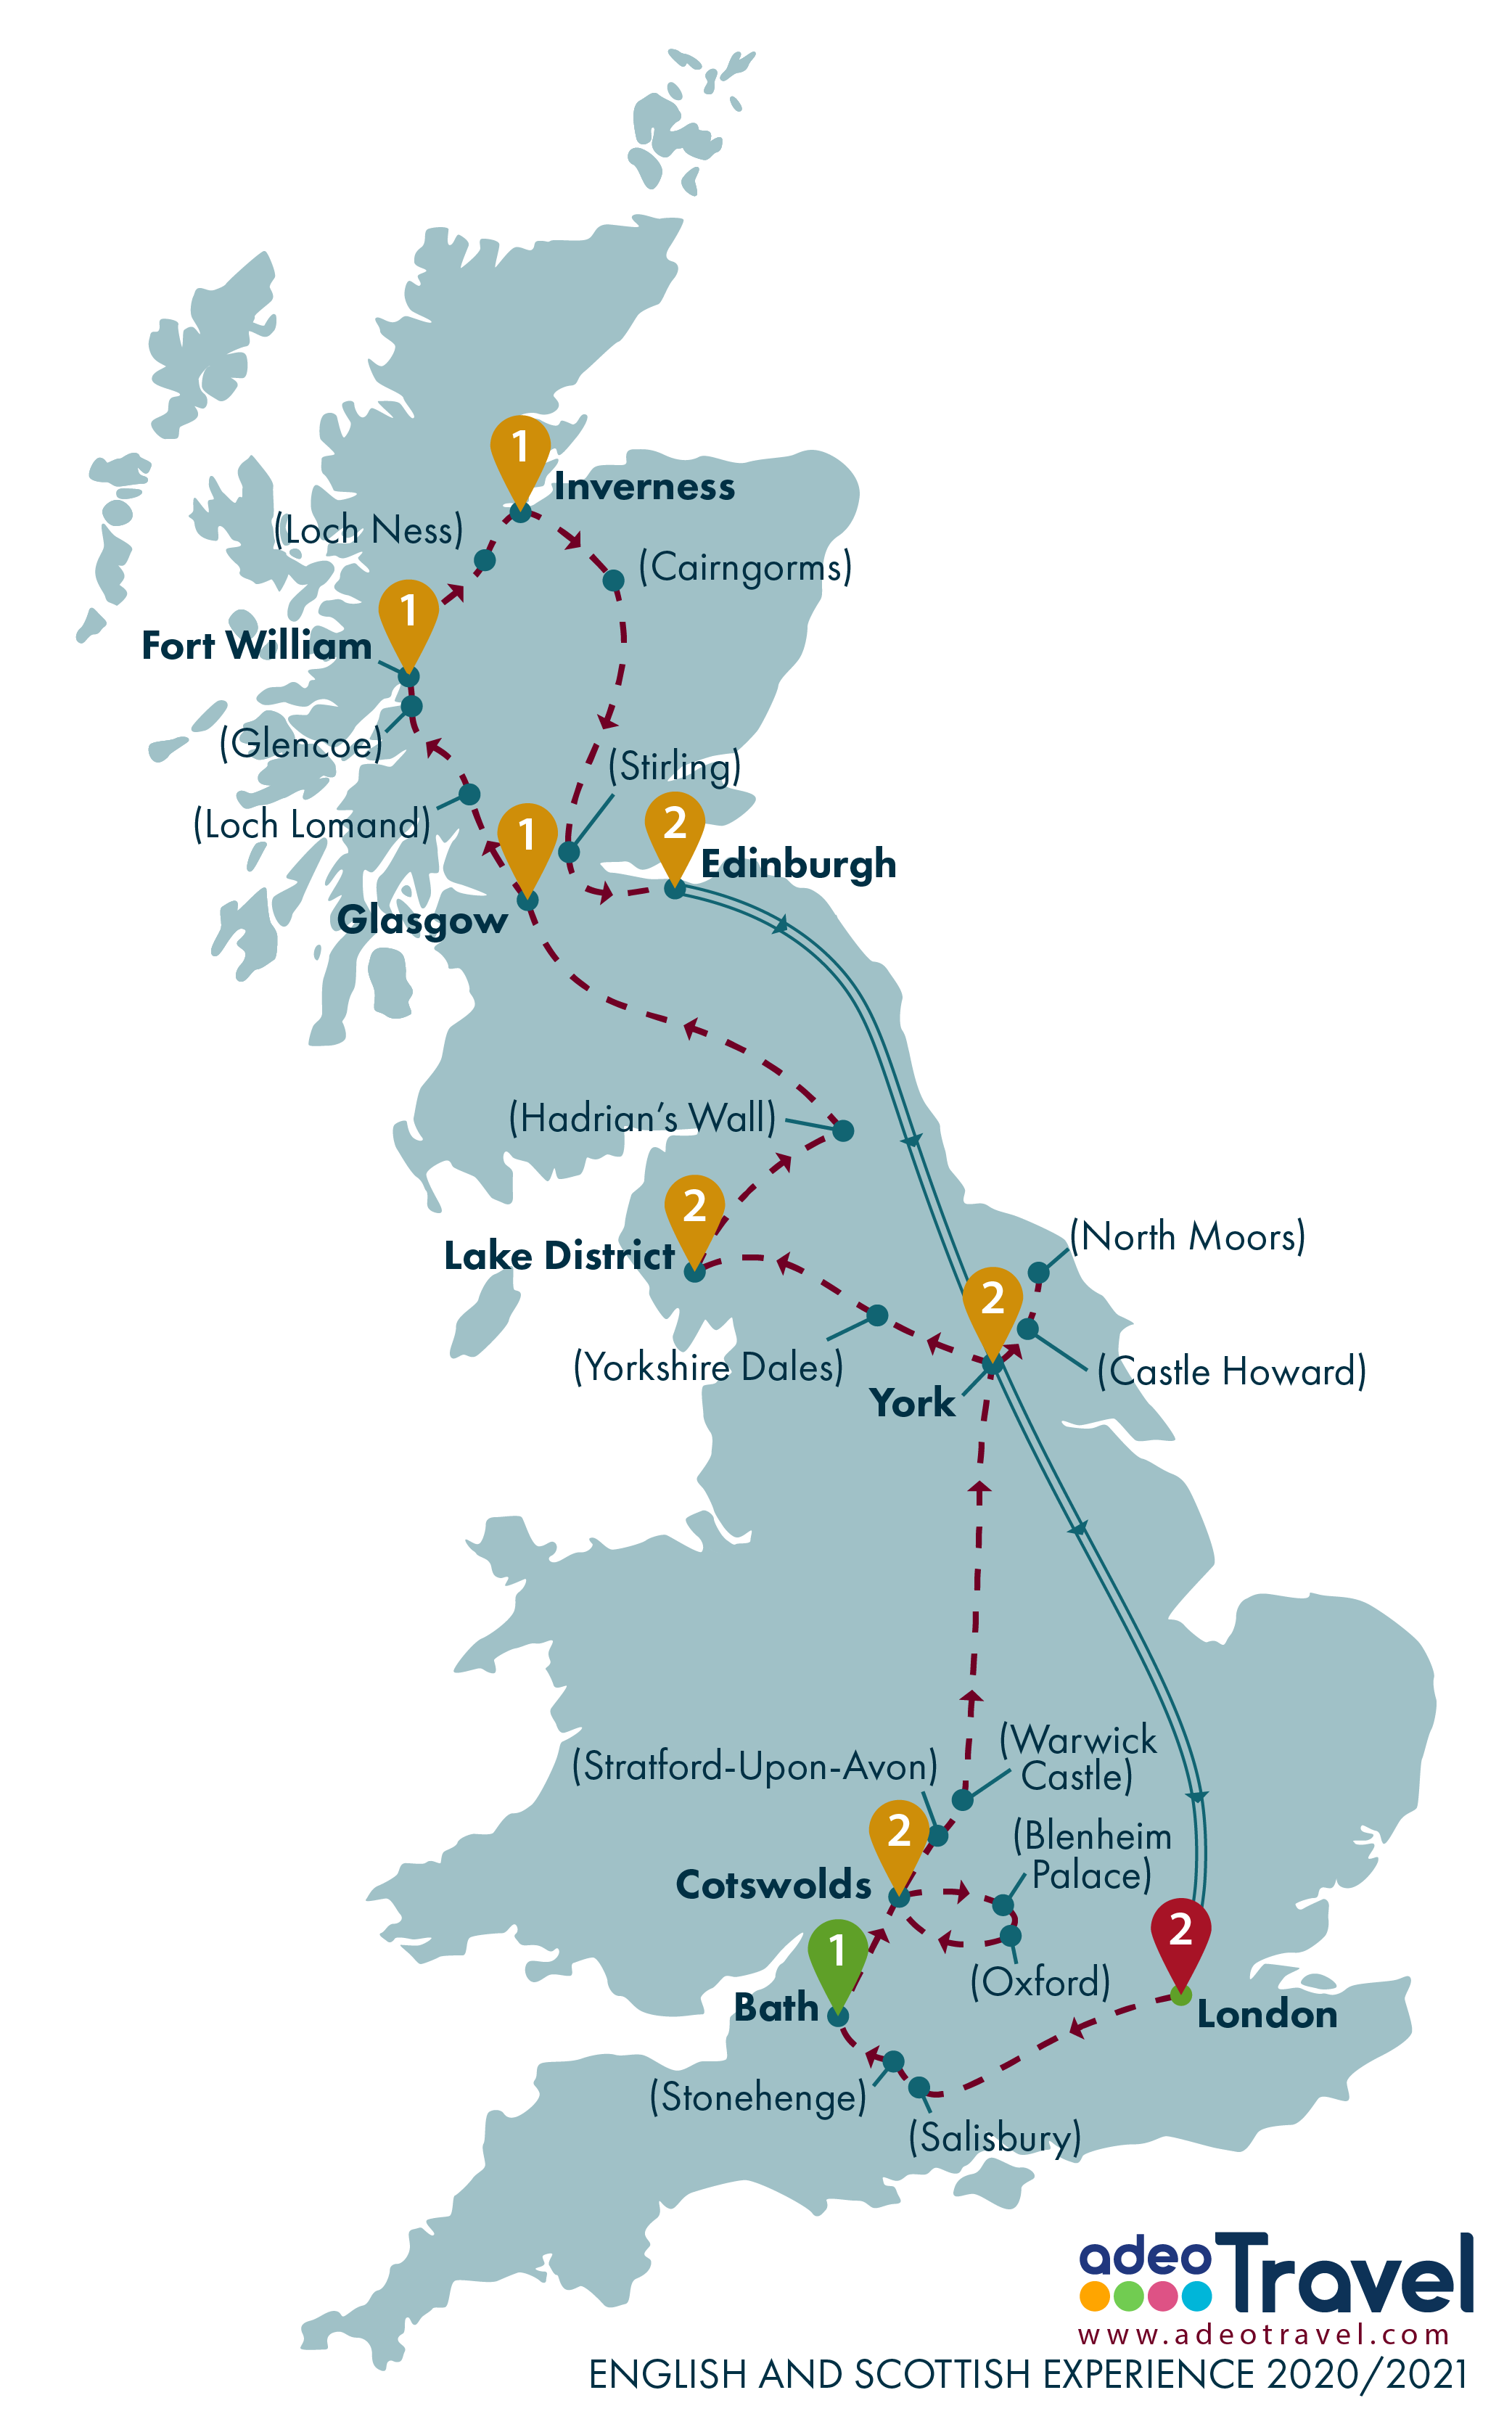 Map - English and Scottish Experience 2020 2021